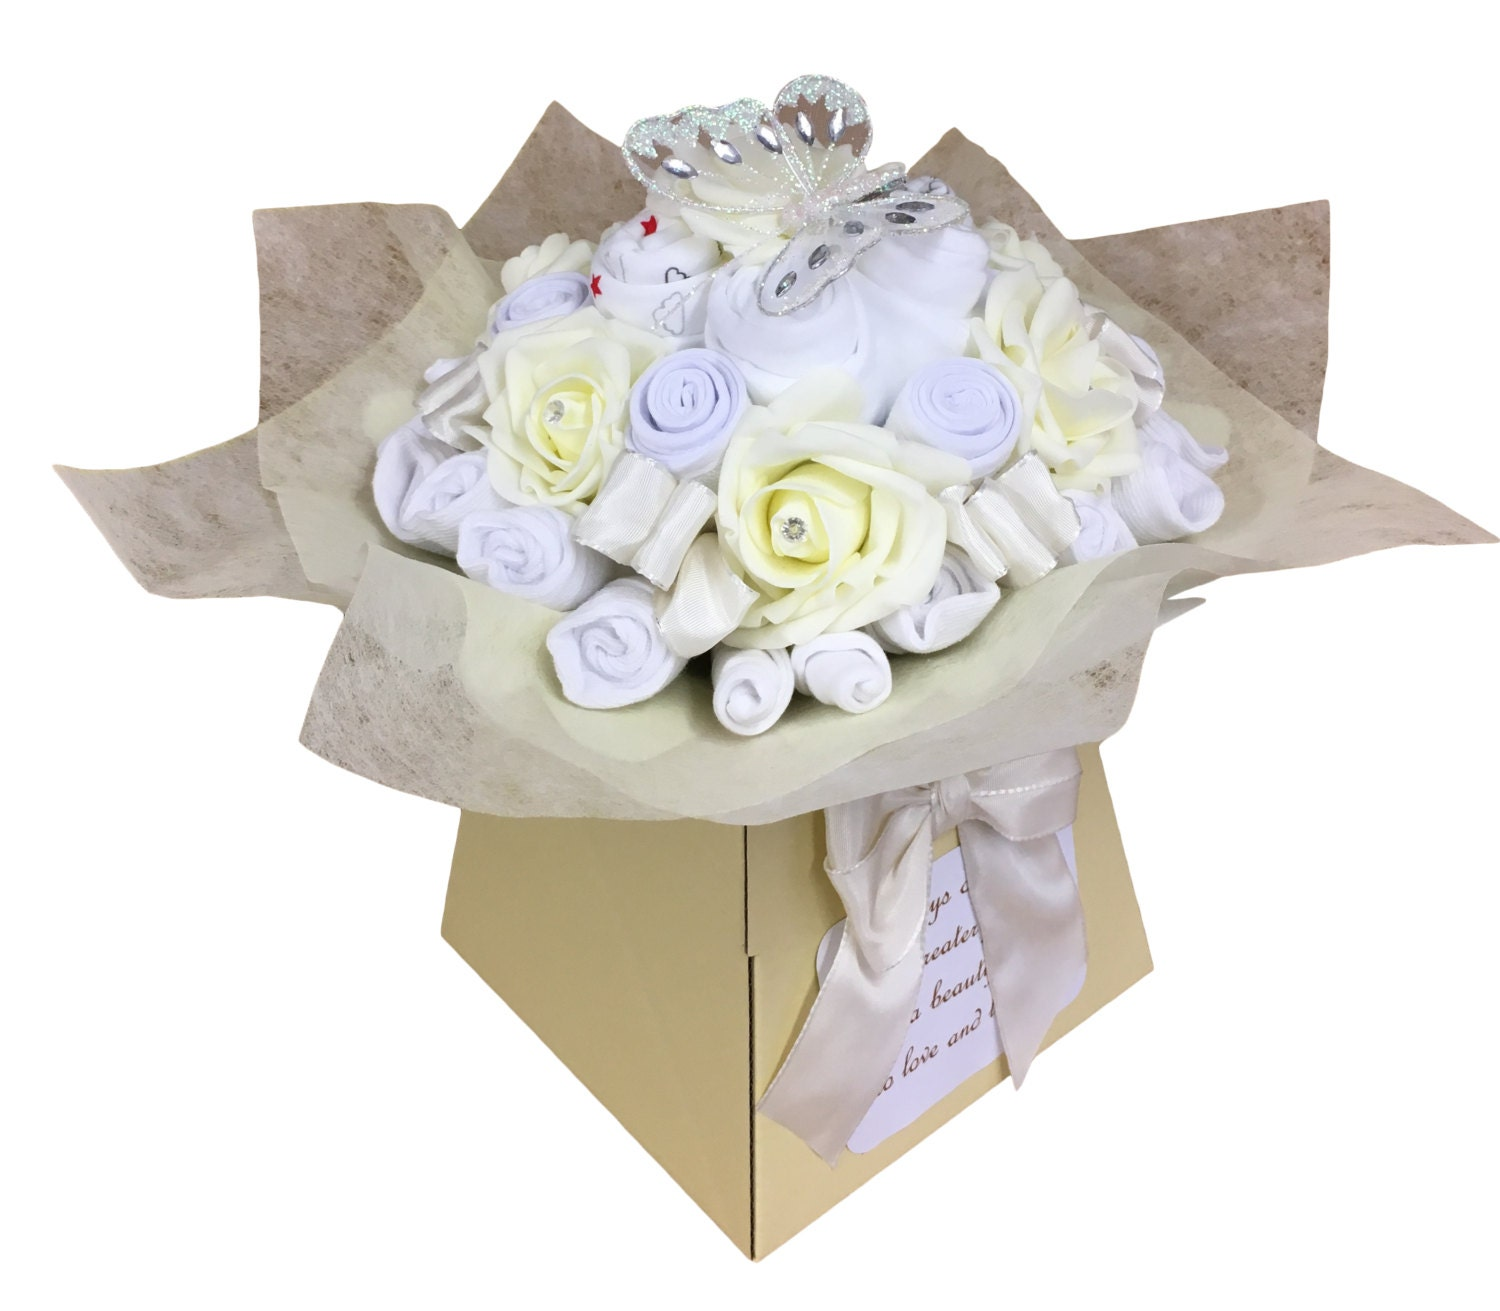 New Baby Gift  Baby Clothes Bouquet  Baby Shower Gift  Diaper Cake  Unisex  19 items of Baby Clothes  Neutral Baby Gift